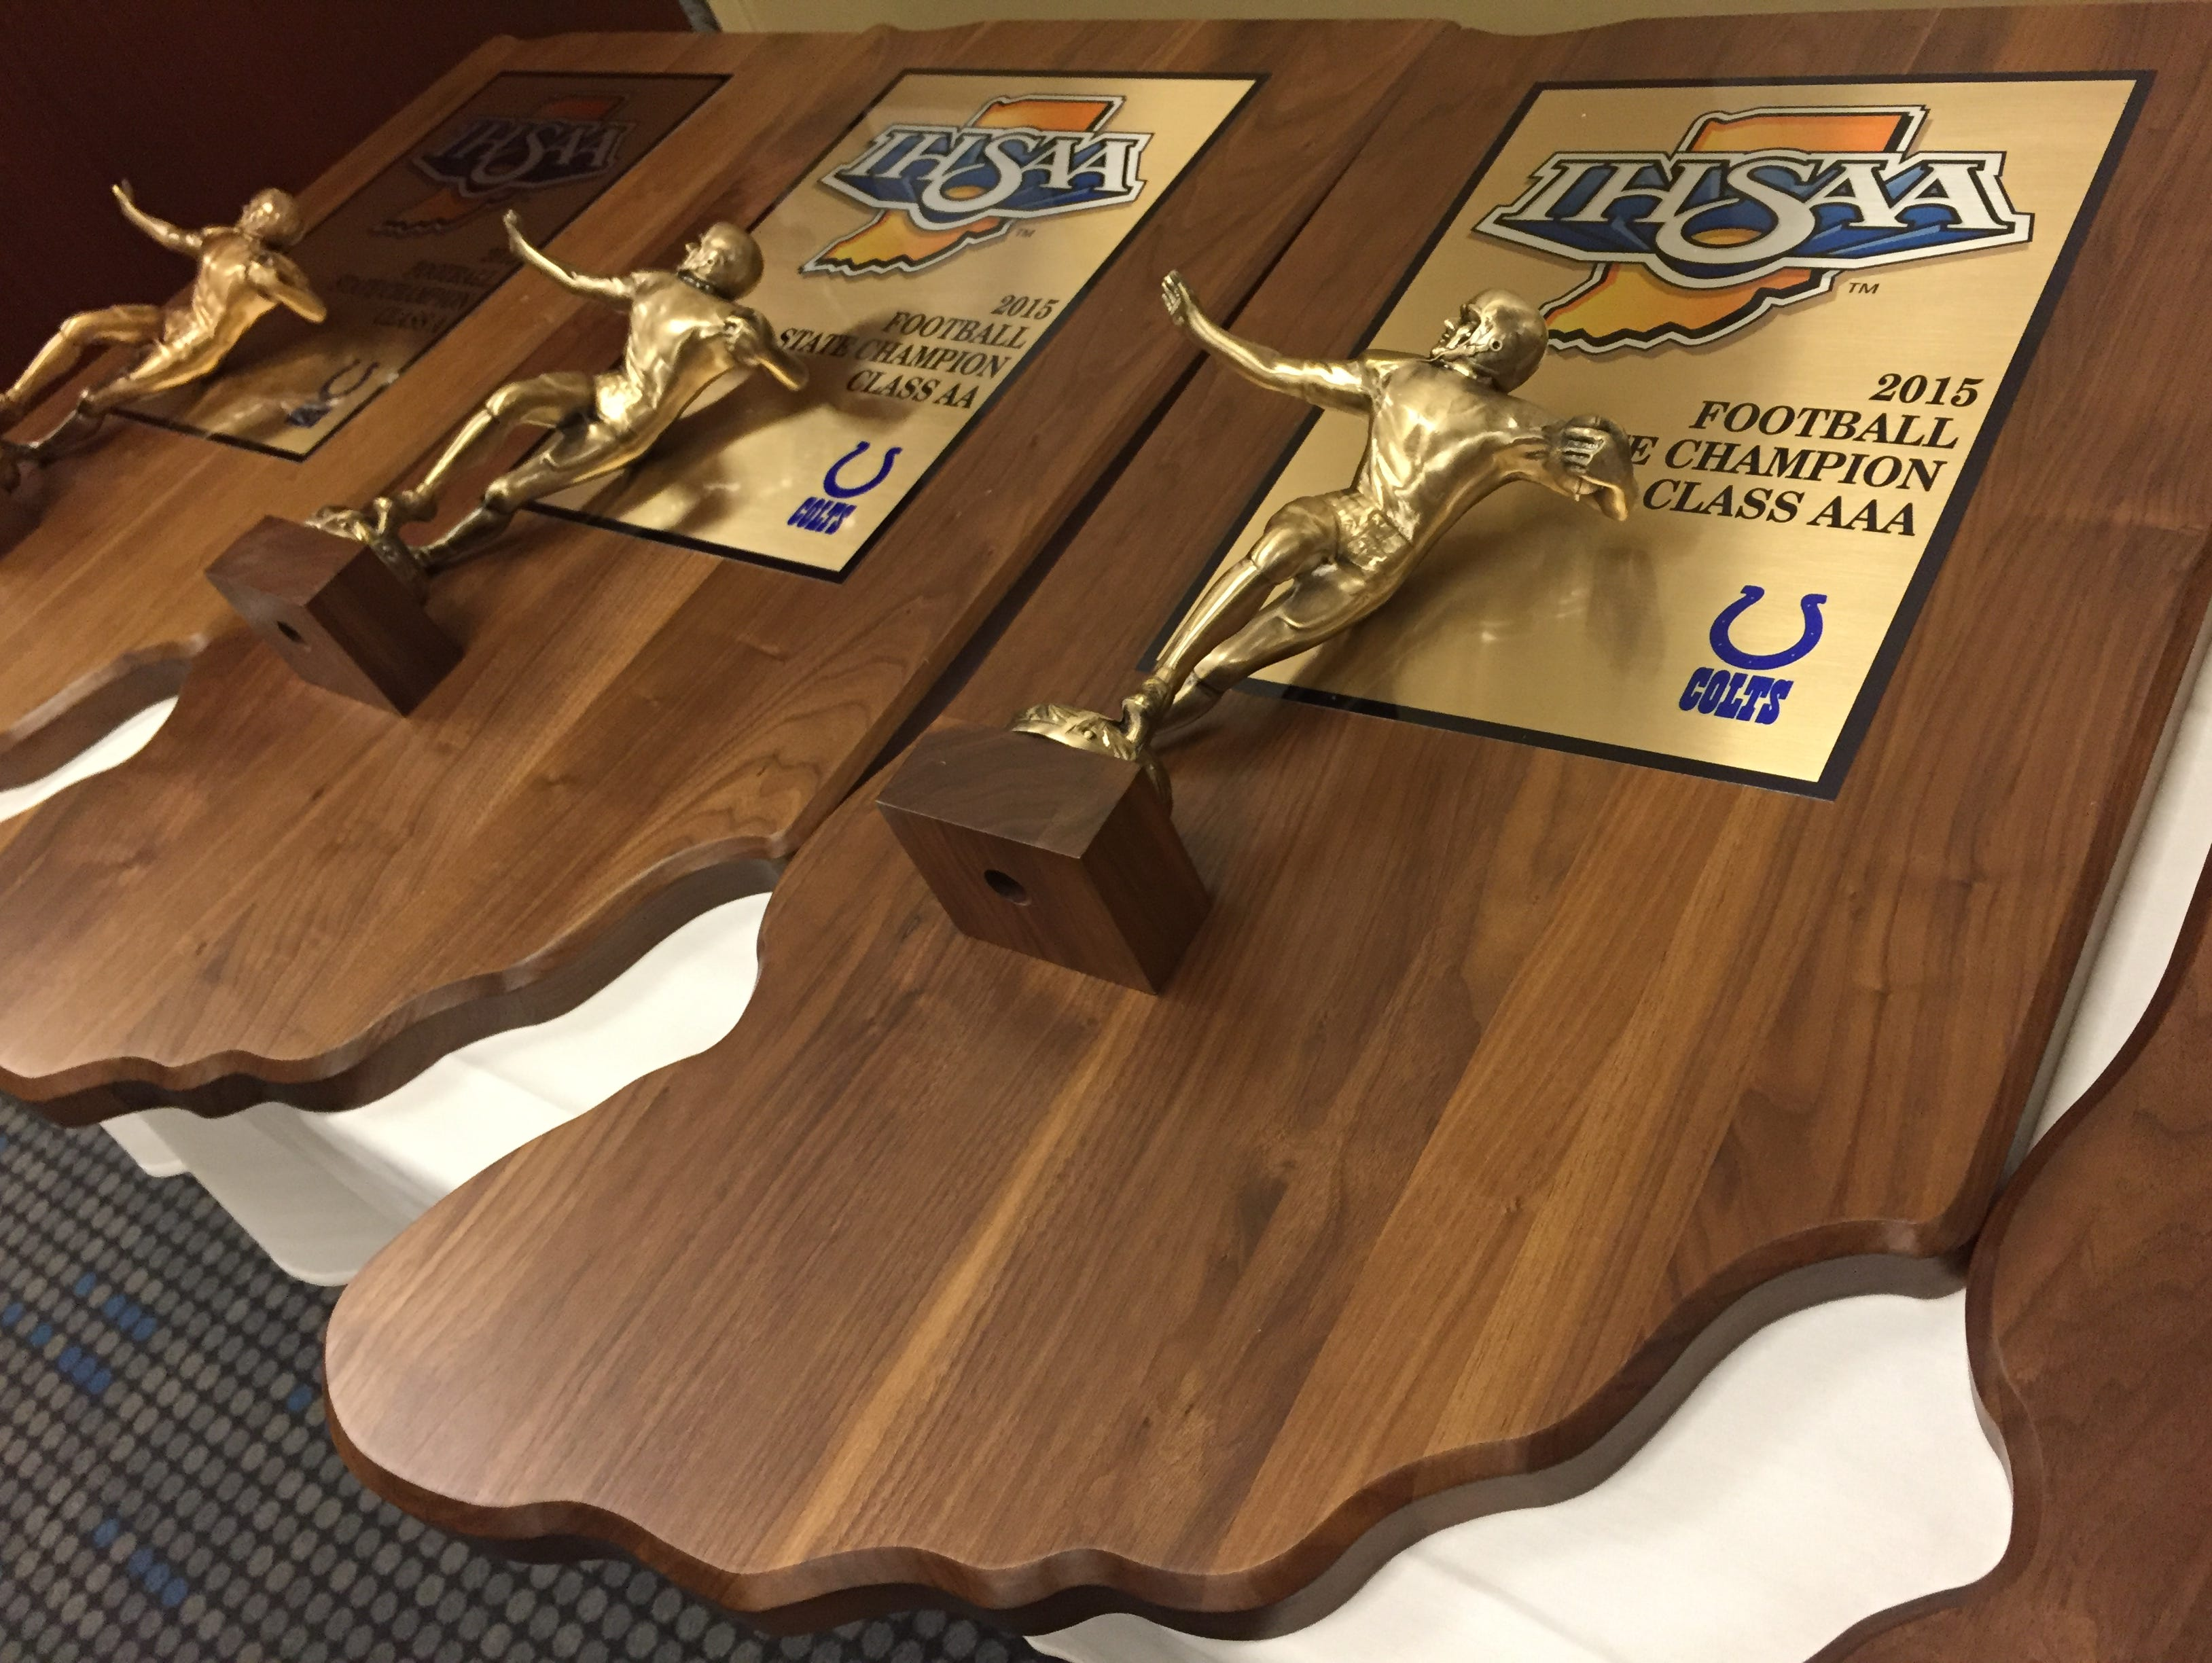 The state championship trophies on display at Lucas Oil Stadium on Monday.